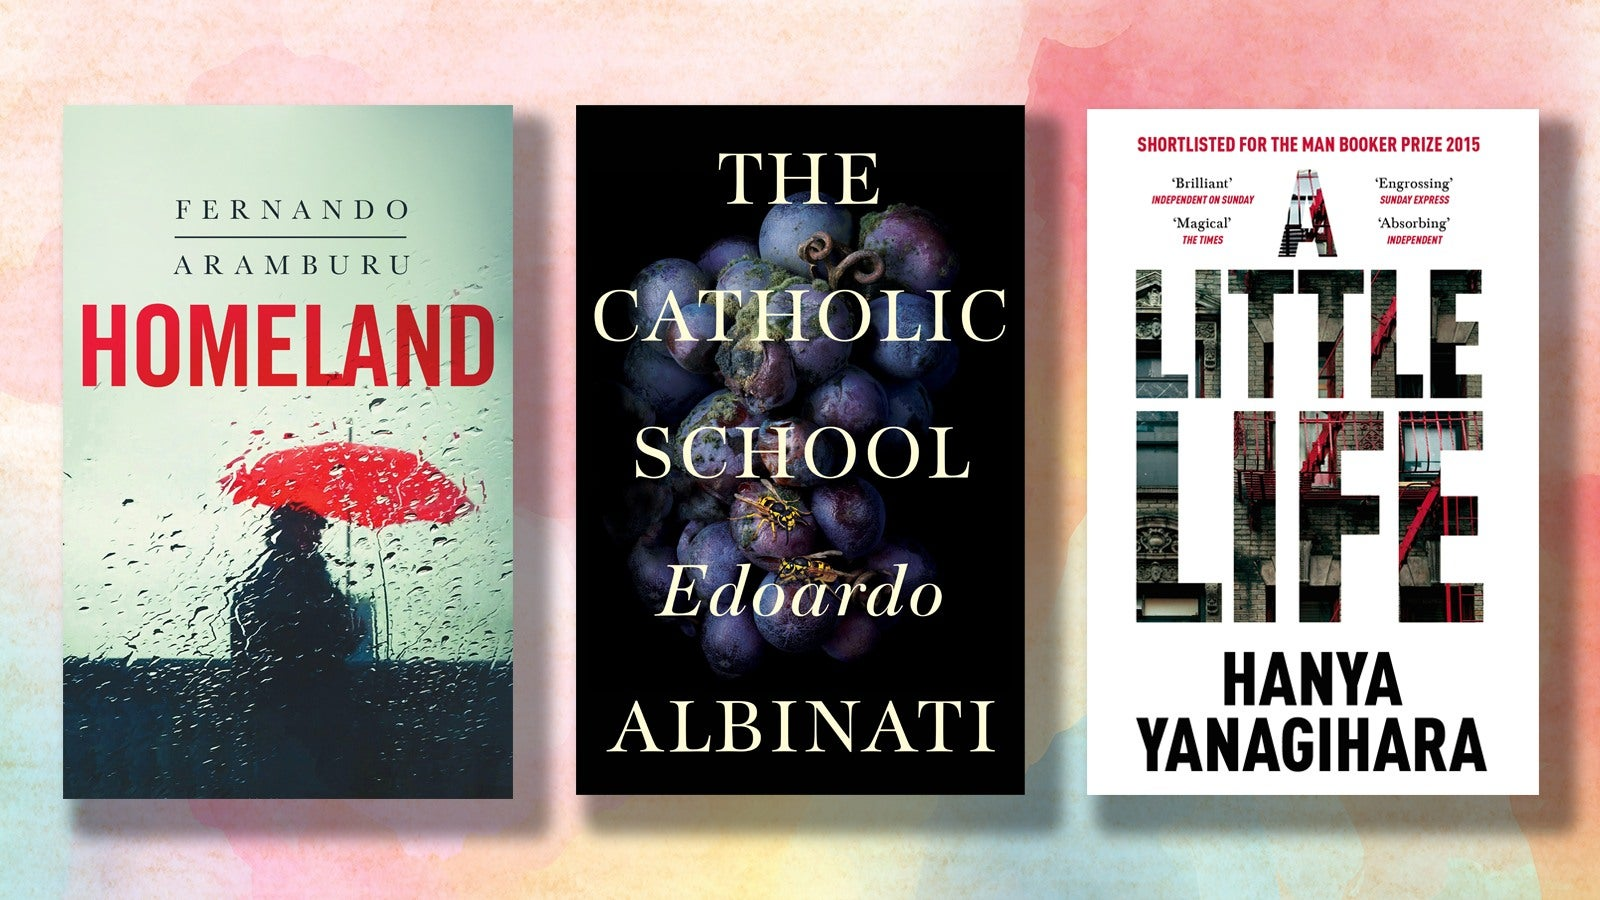 Book covers for Homeland, The Catholic School and A Little Life